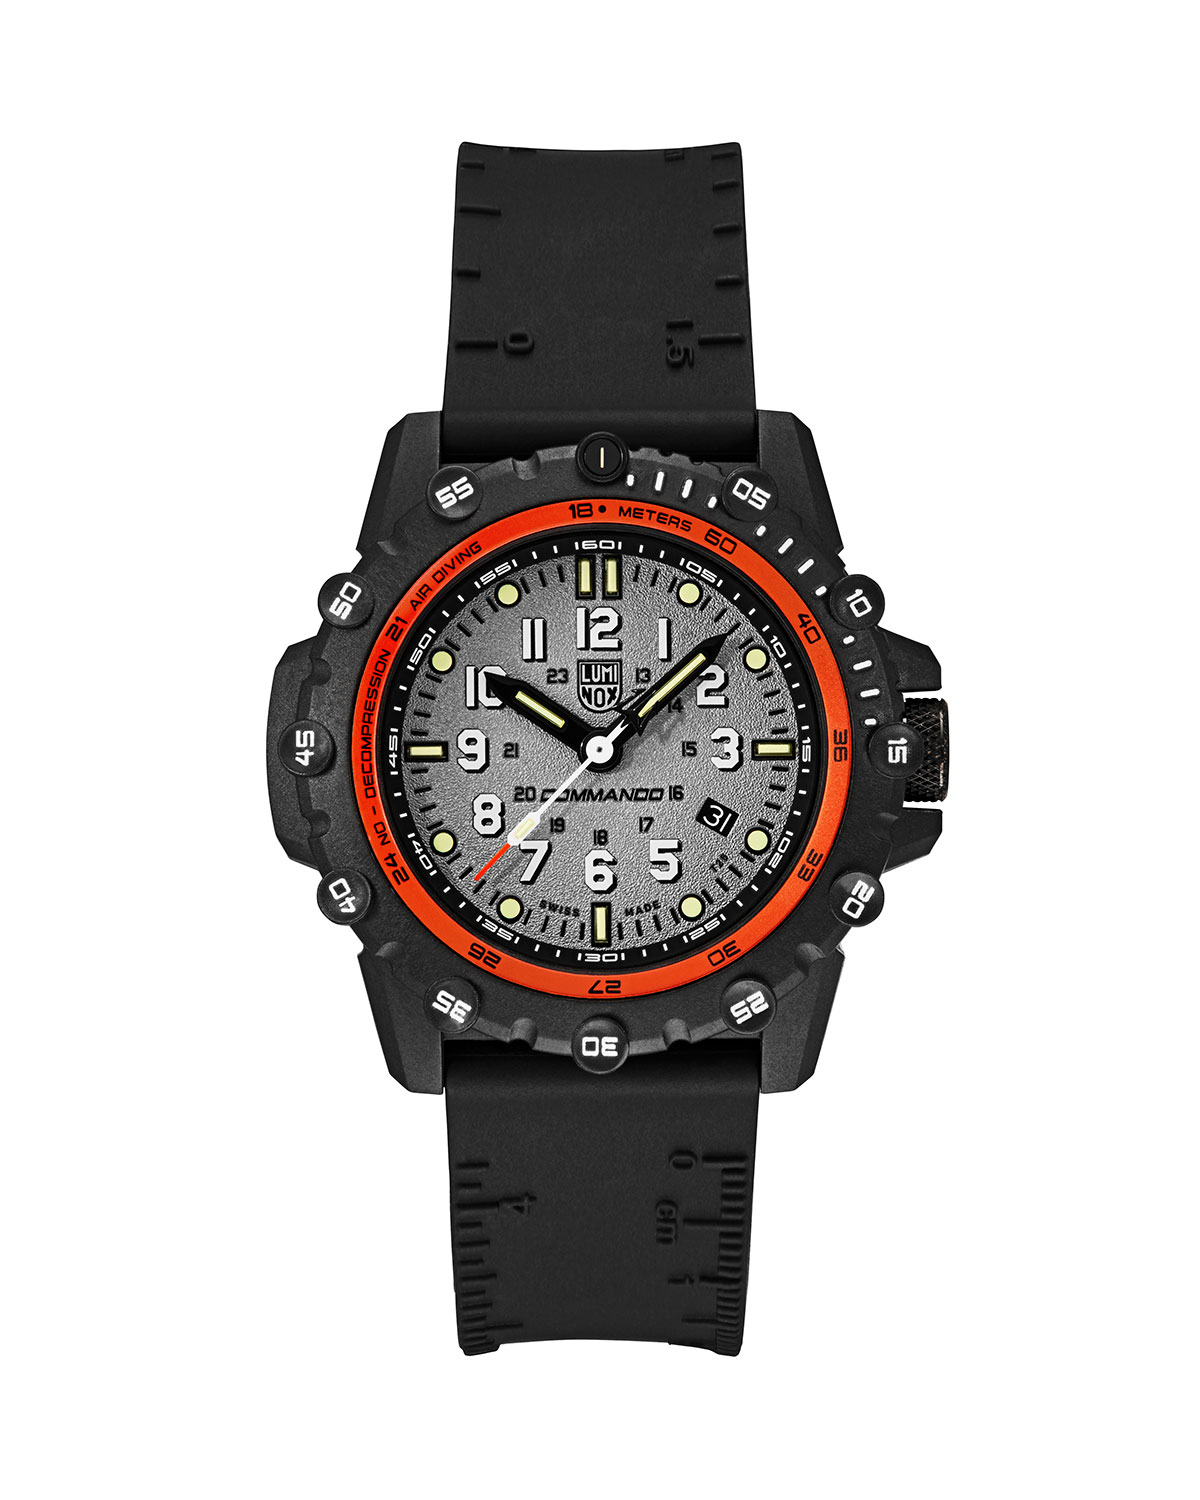 Men's 44mm Commando 3300 Series Watch with Rubber Strap